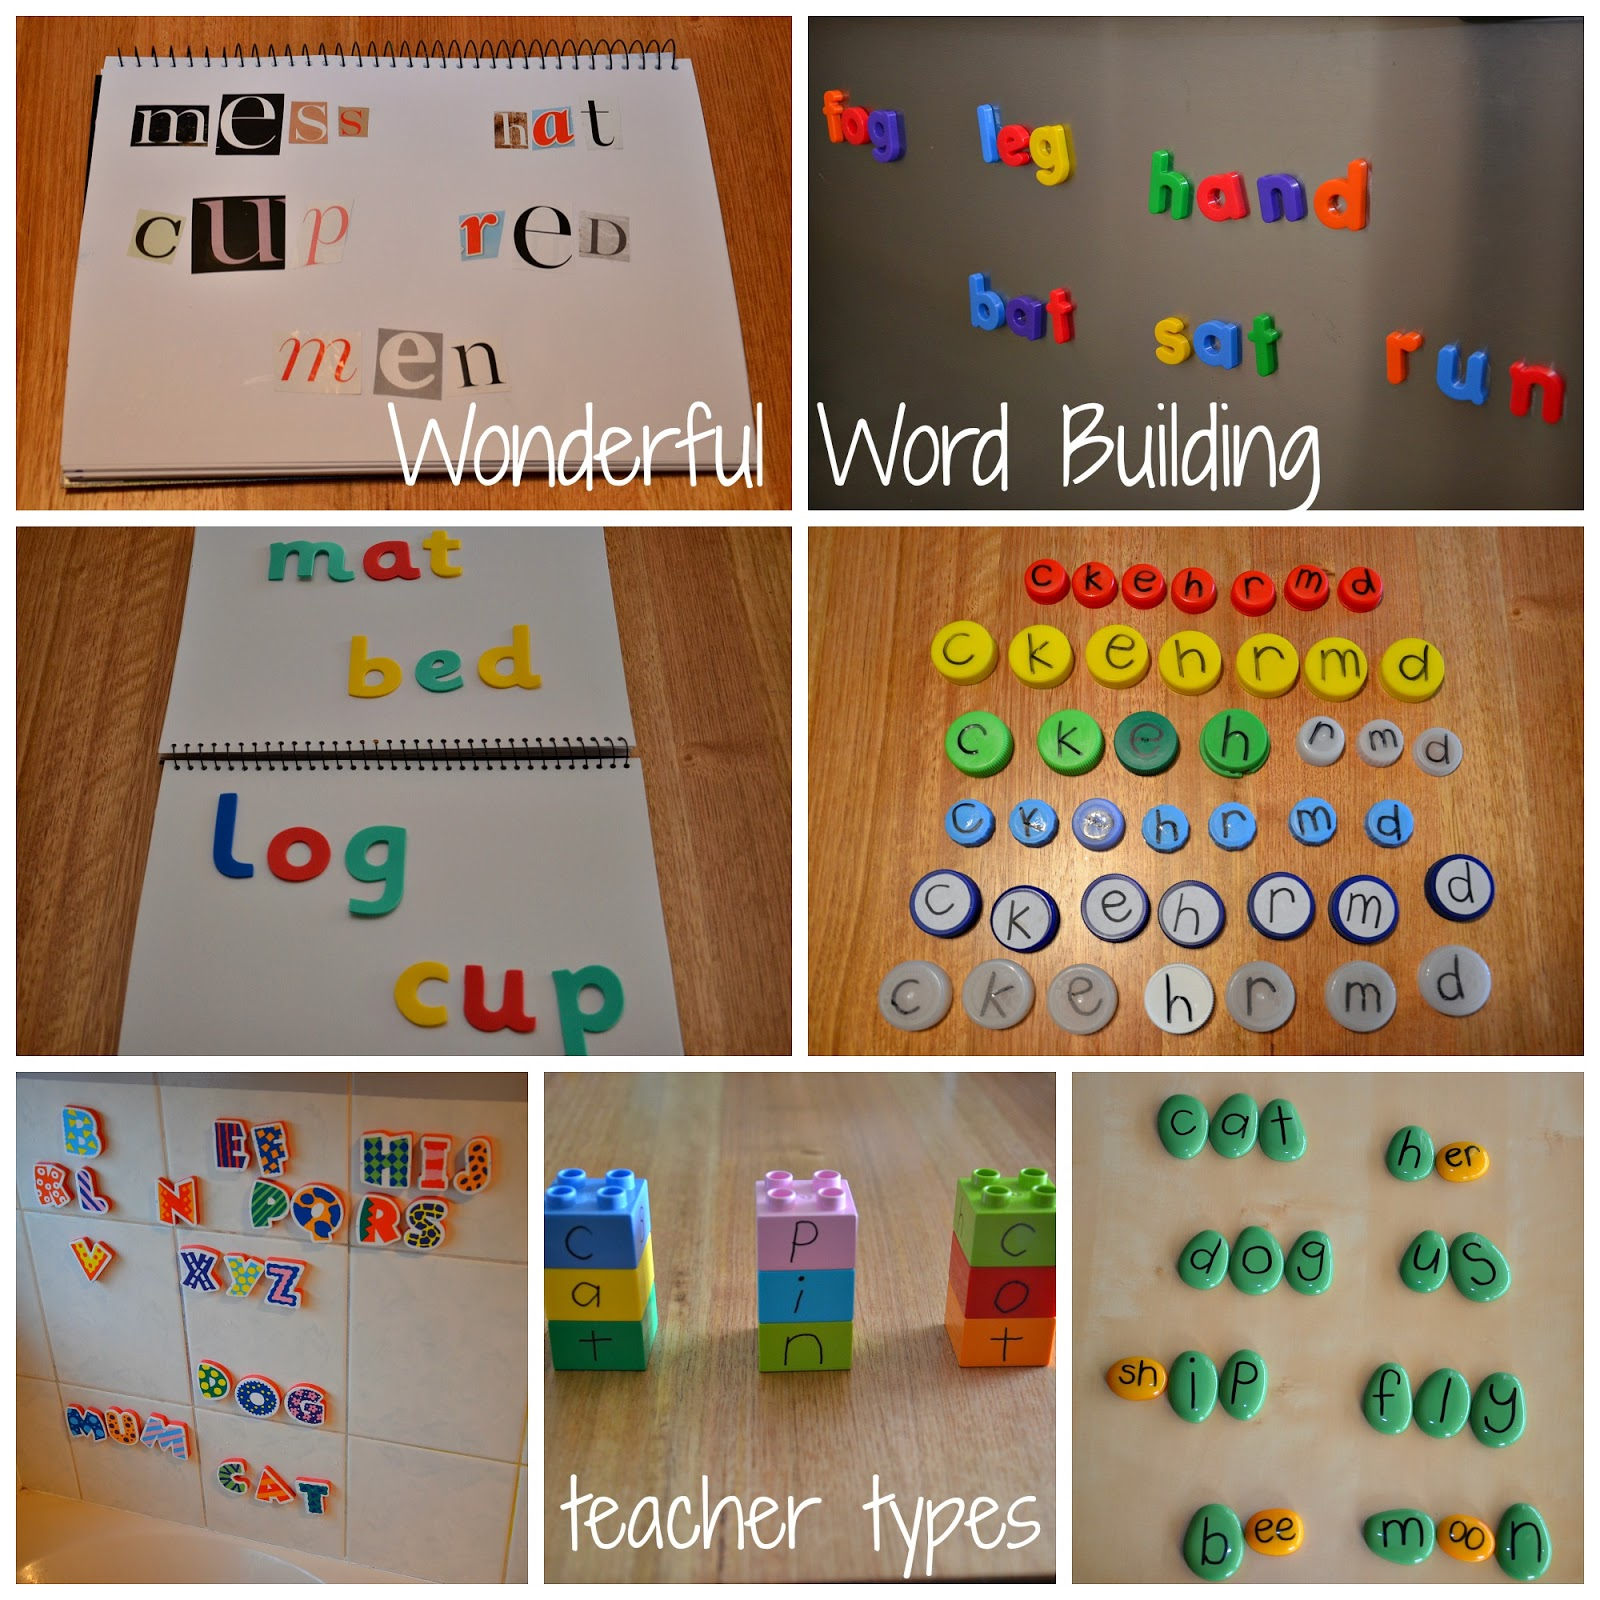 Printables At Words For Kids helpful hints to learn sight words teacher types children love using hands on materials rather than just looking at paper